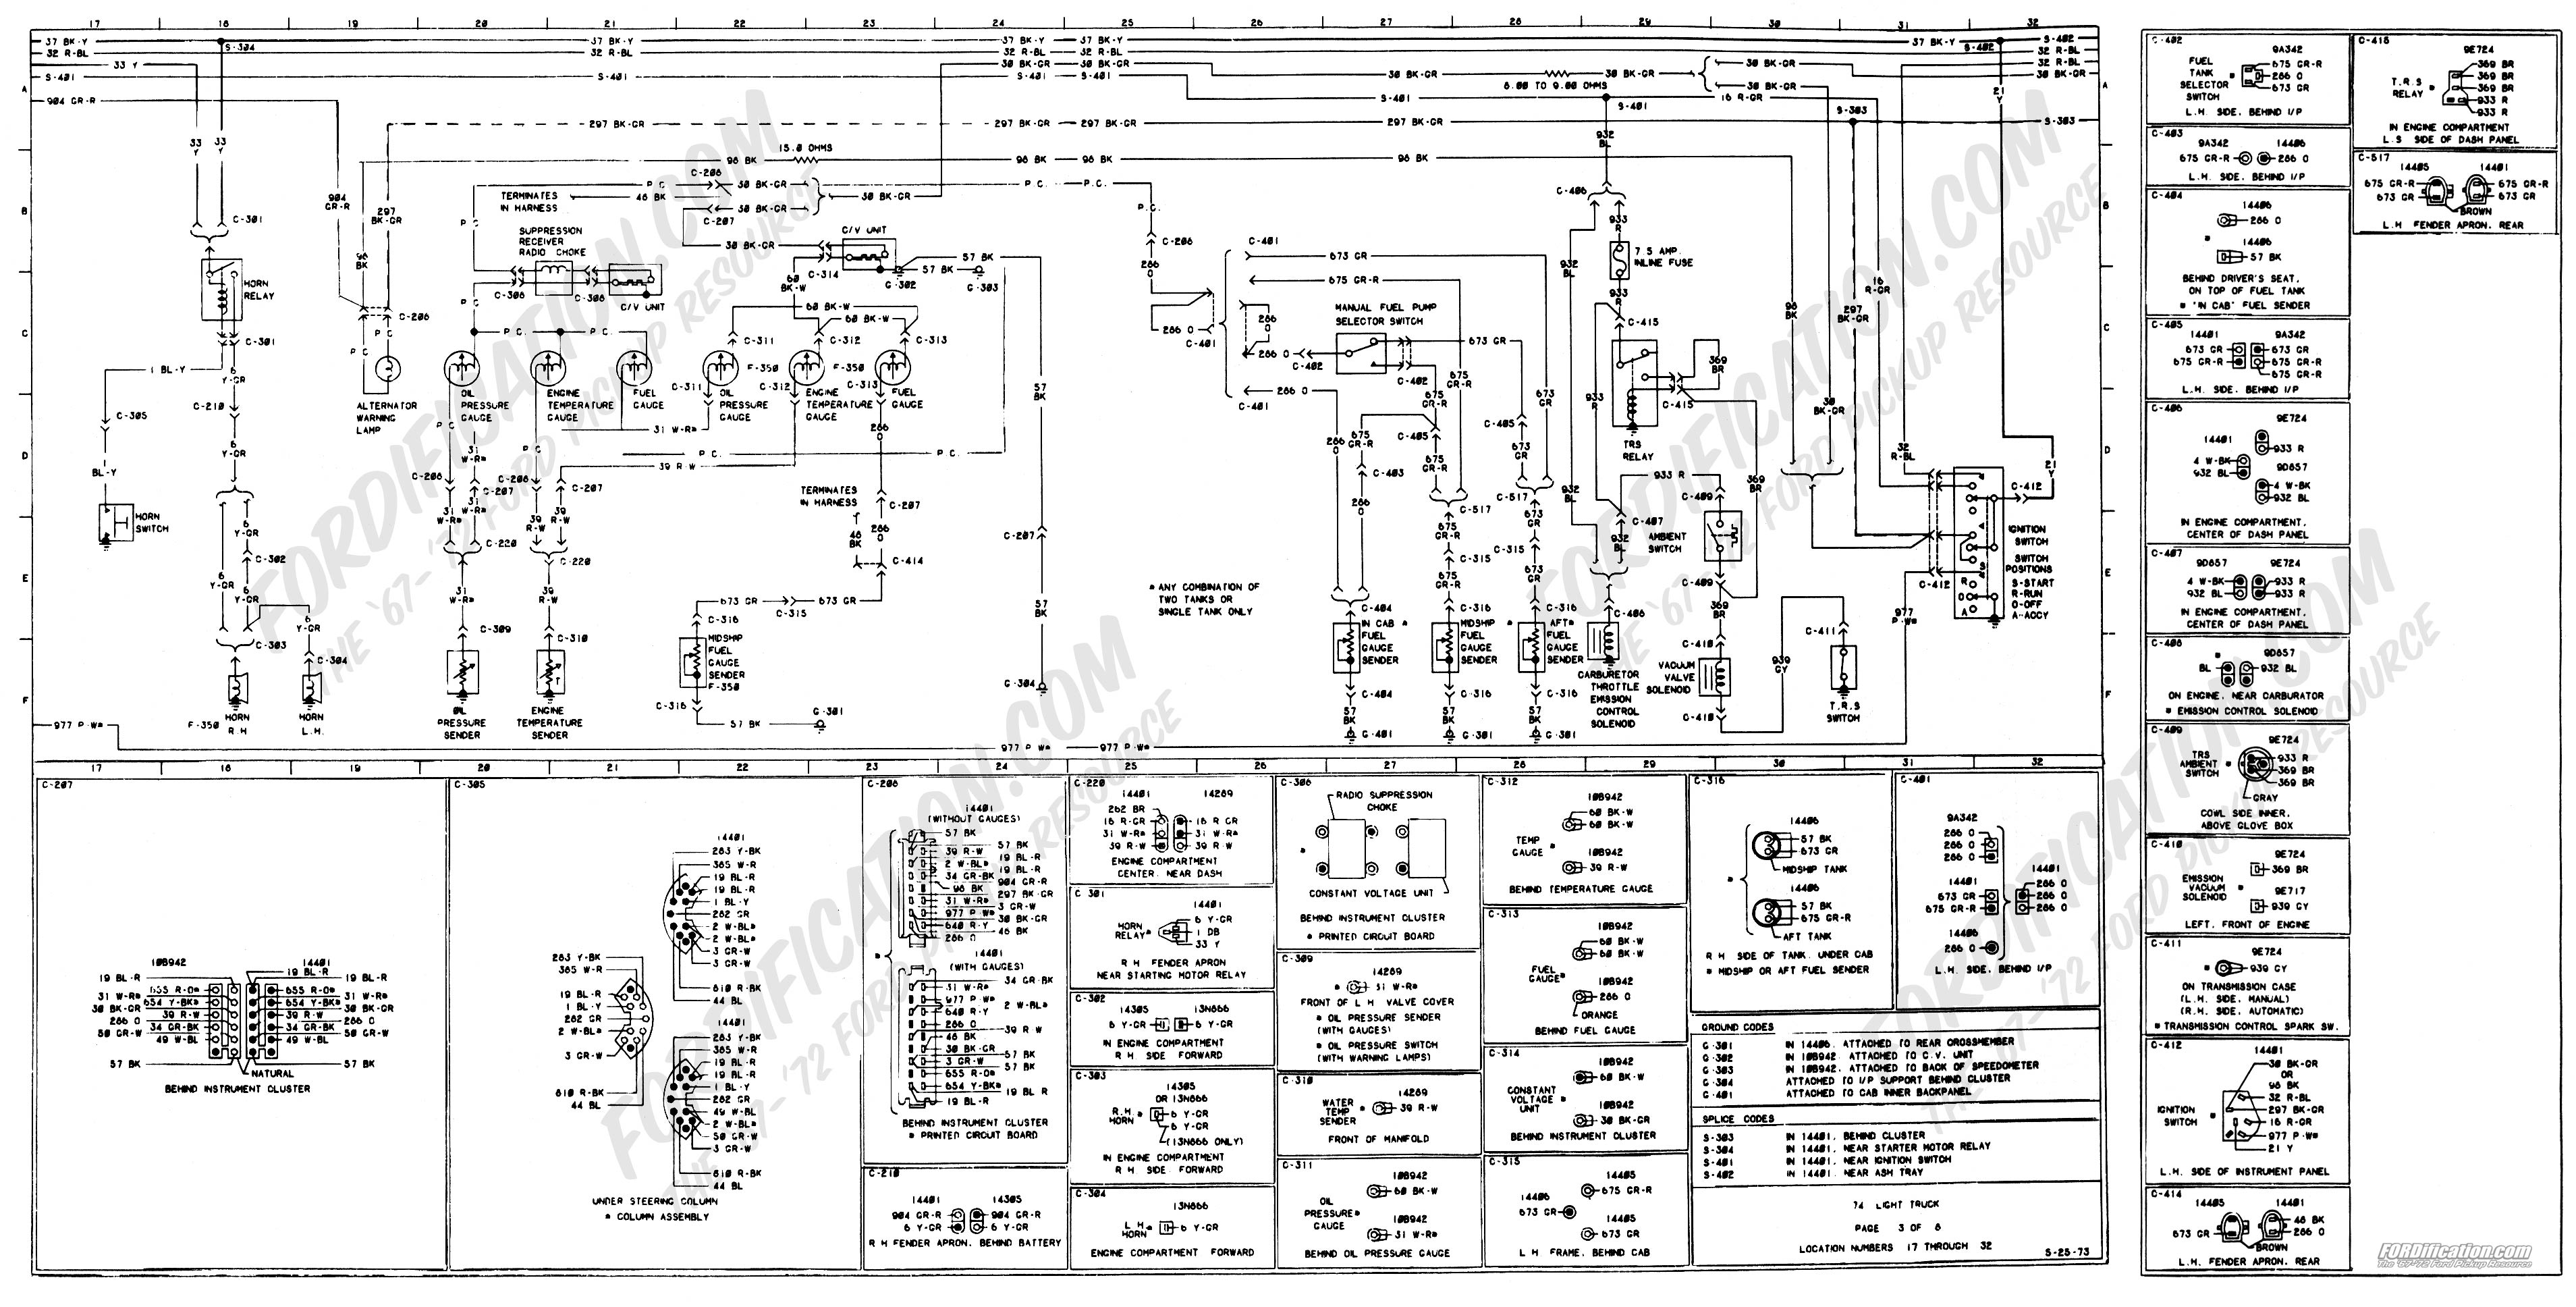 wiring_74master_3of8 1973 1979 ford truck wiring diagrams & schematics fordification net ford ltl 9000 wiring diagram at creativeand.co